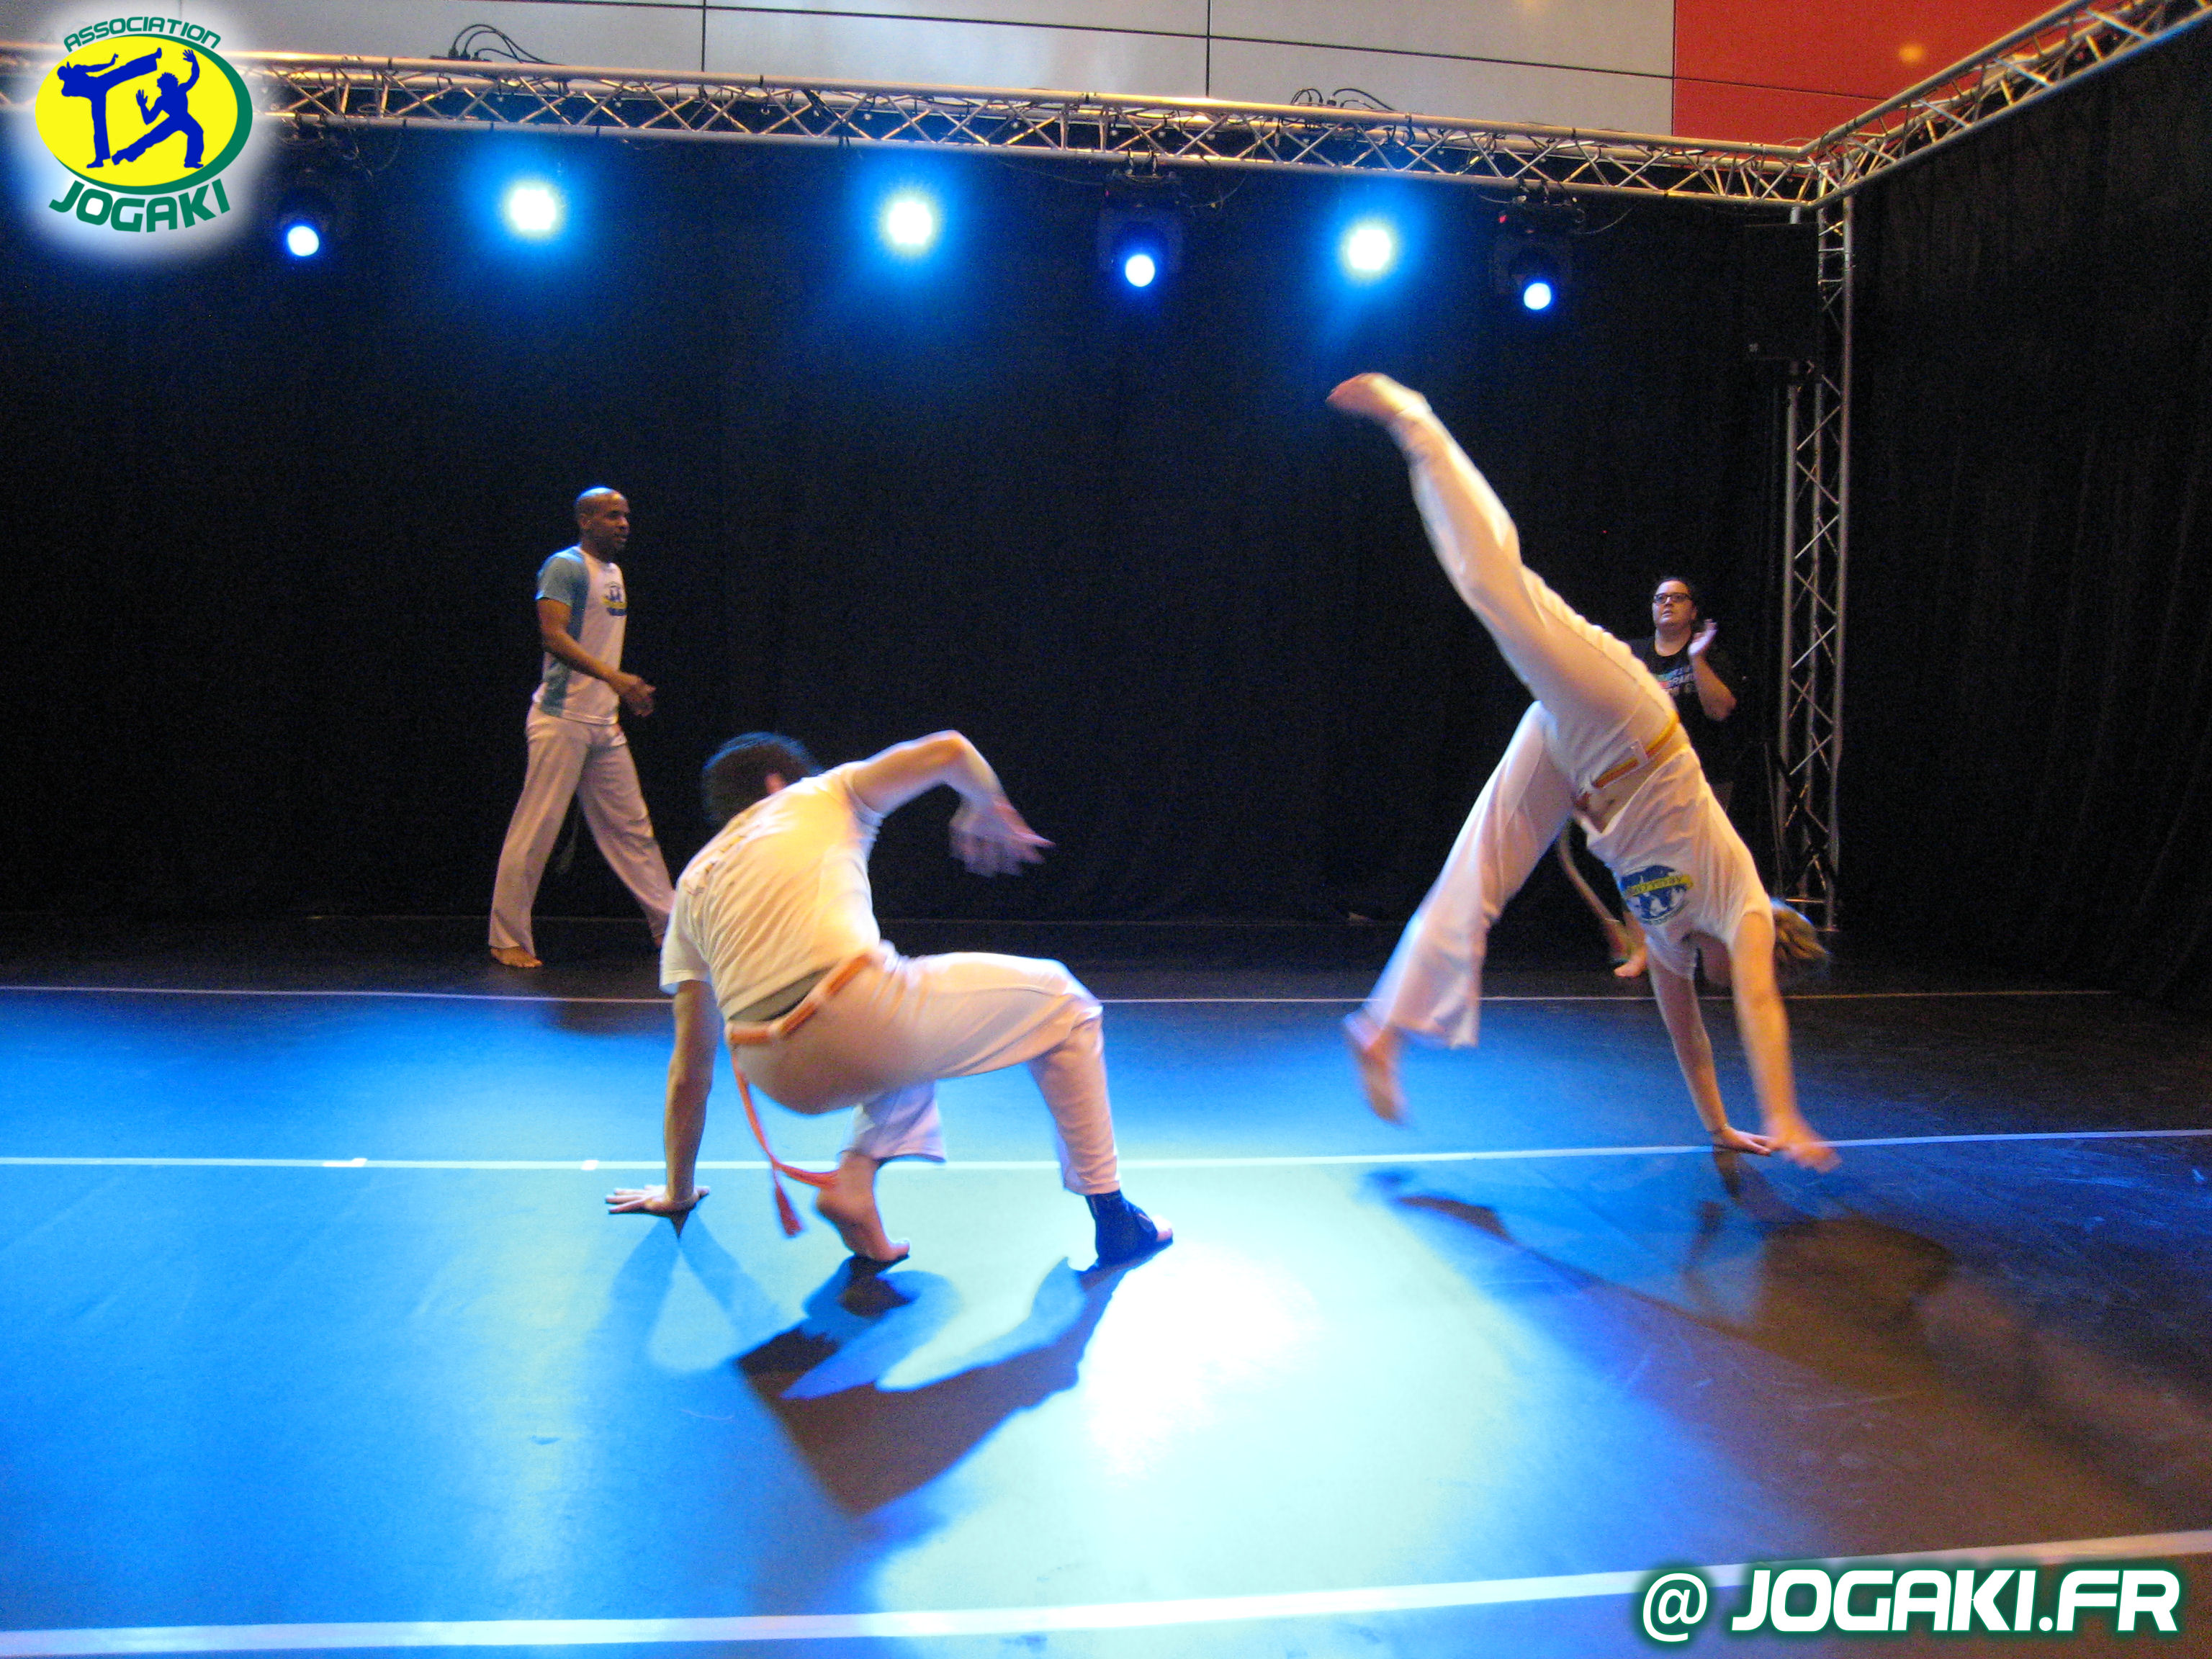 spectacle-capoeira-paris-danseurs-evenement-happening-bresil-280